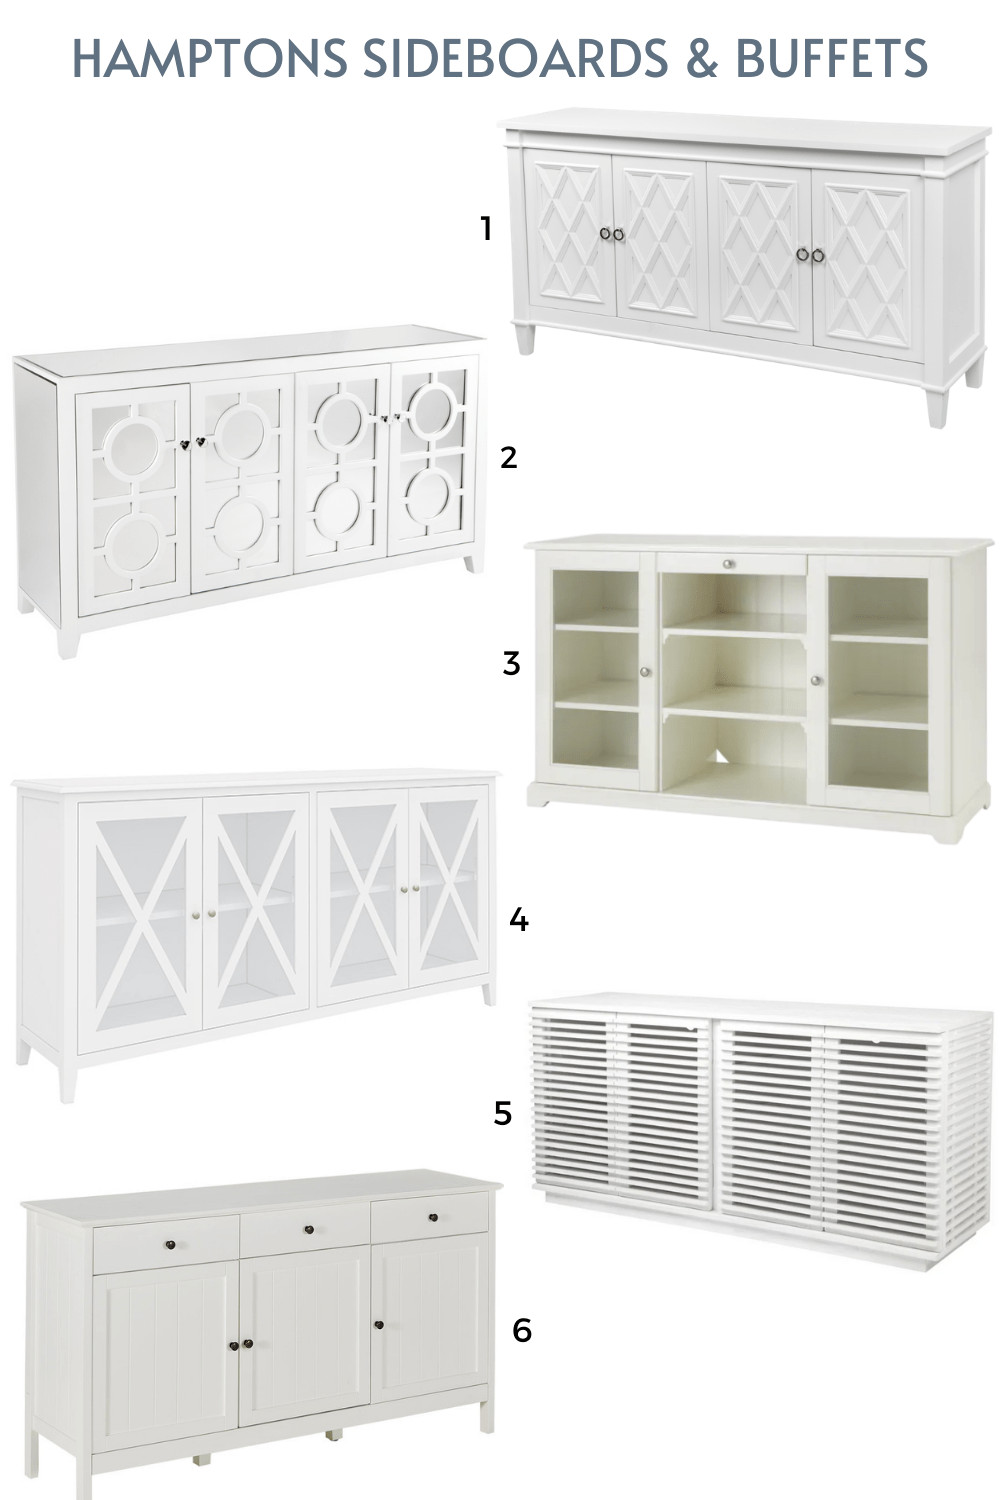 white hamptons sideboards buffets online